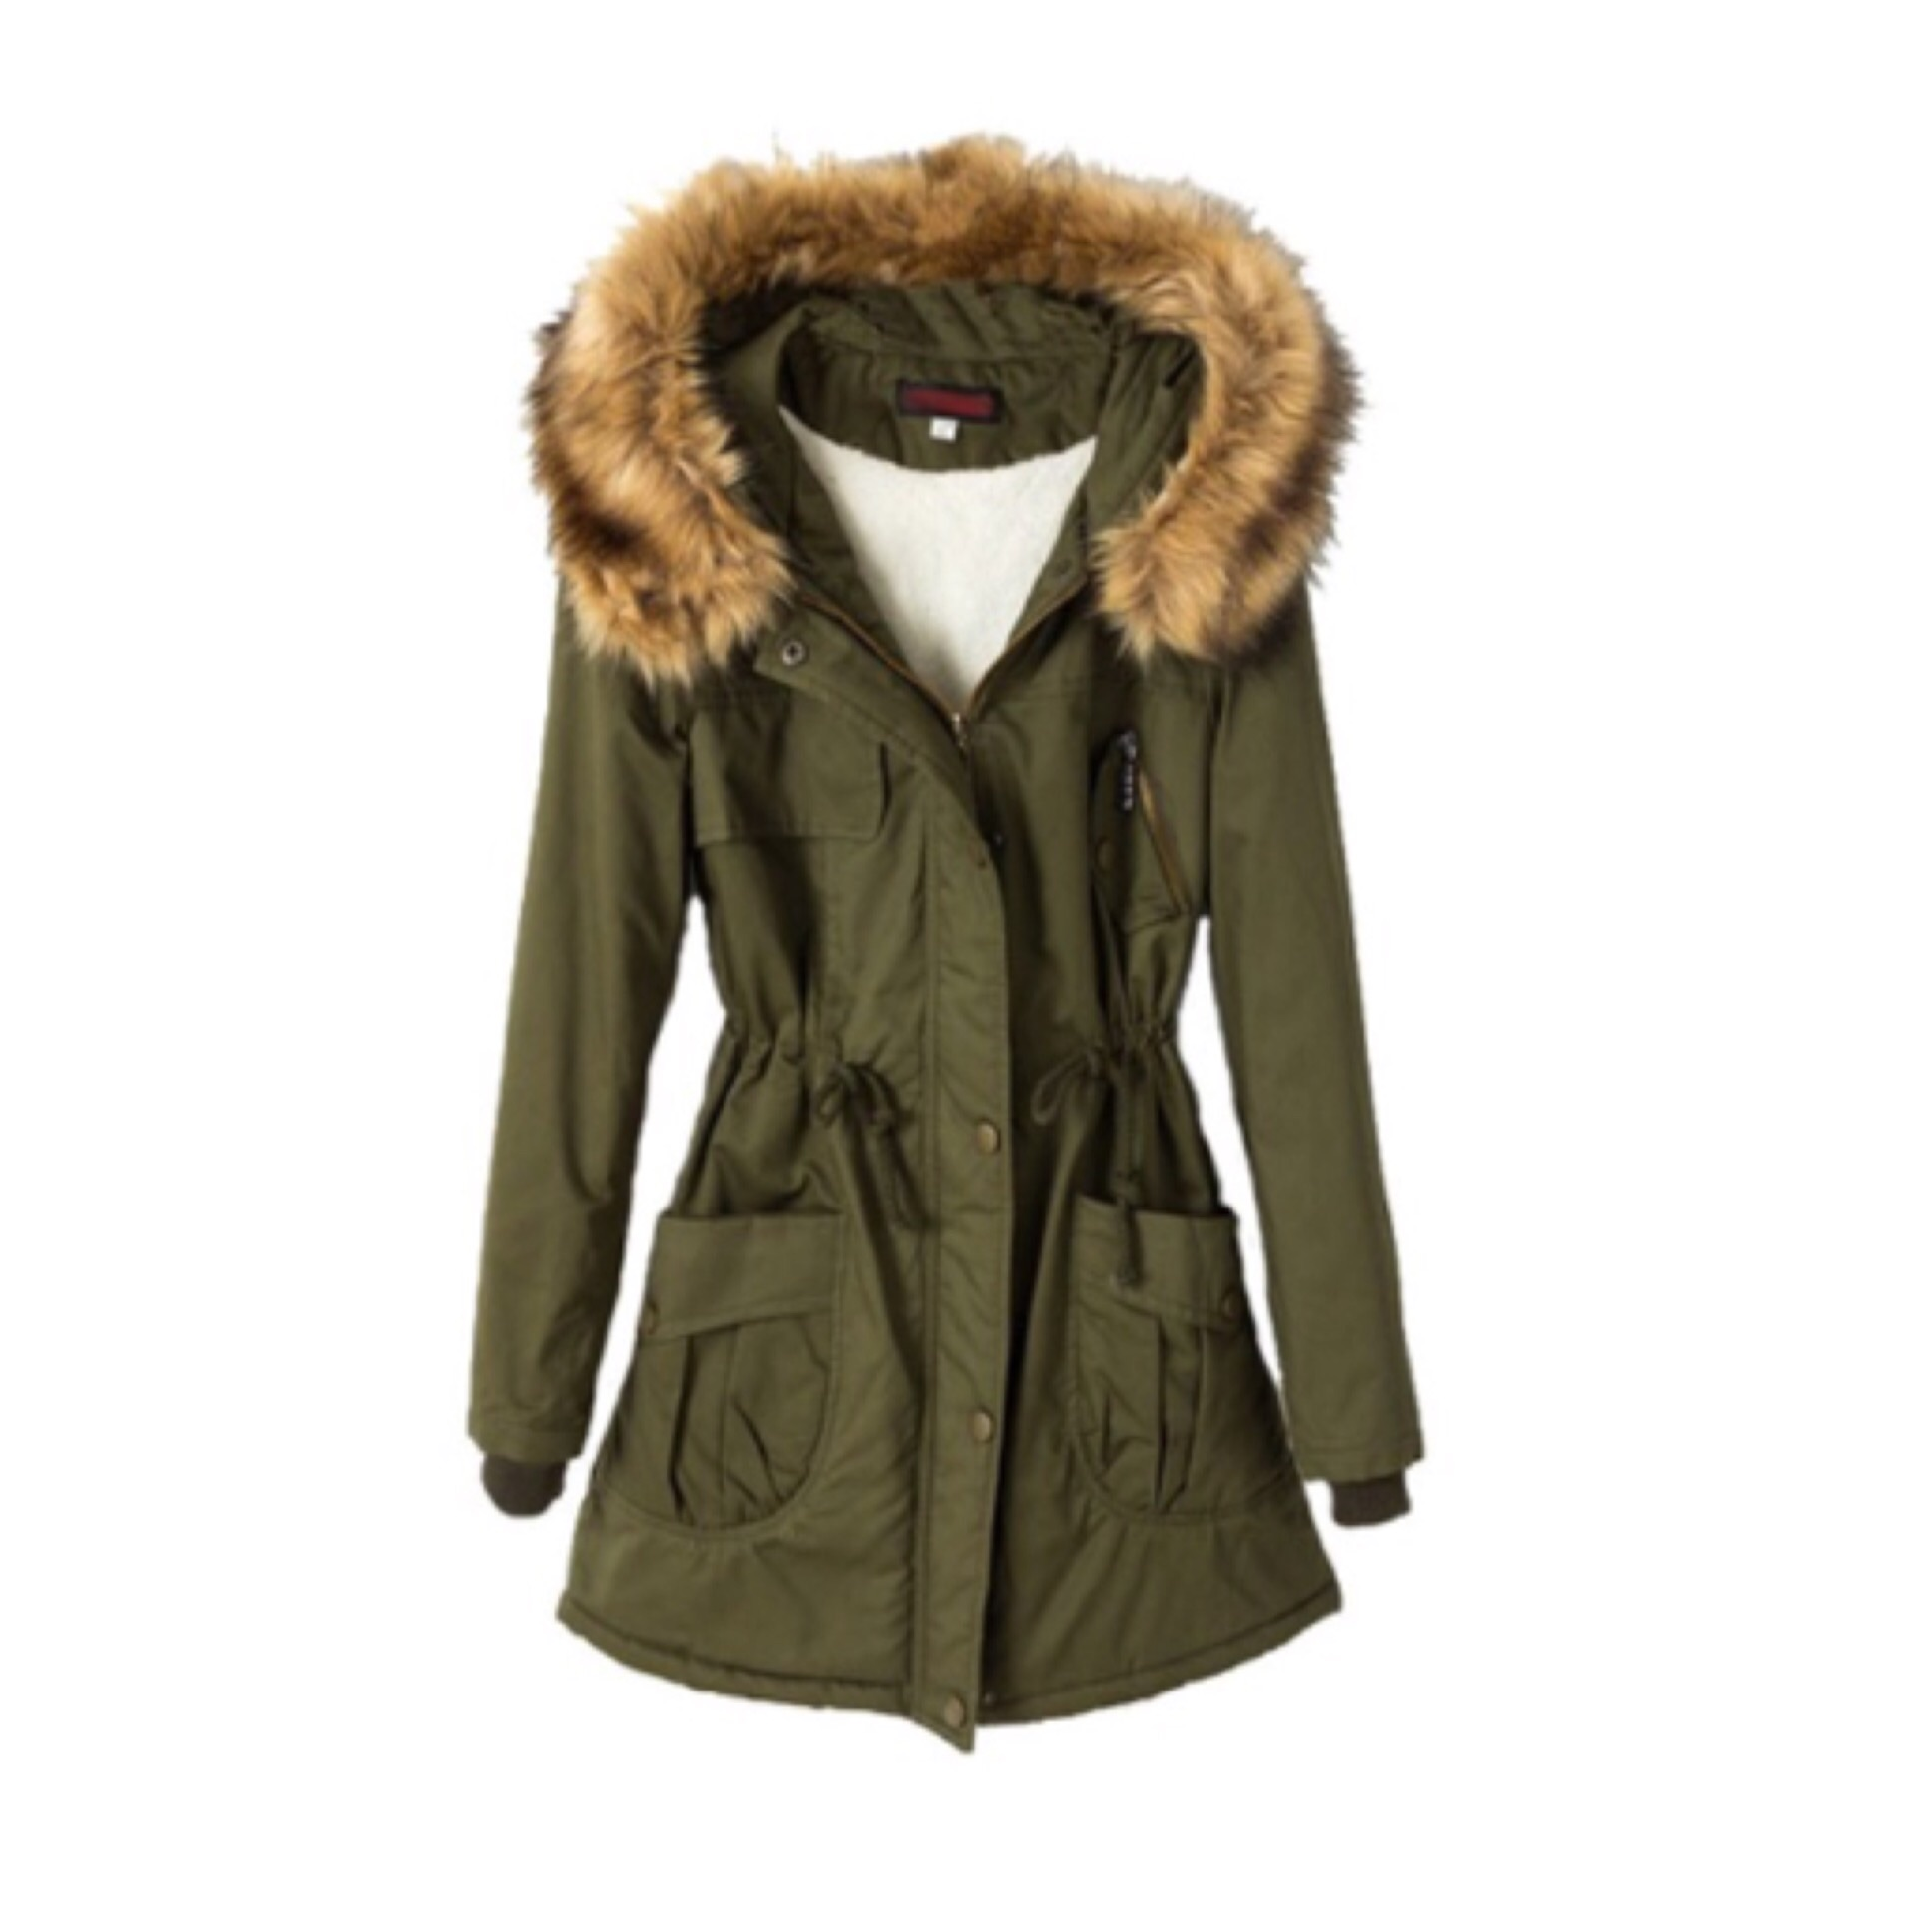 Army Green Fur Hooded Parka Jacket | Online Store Powered by Storenvy